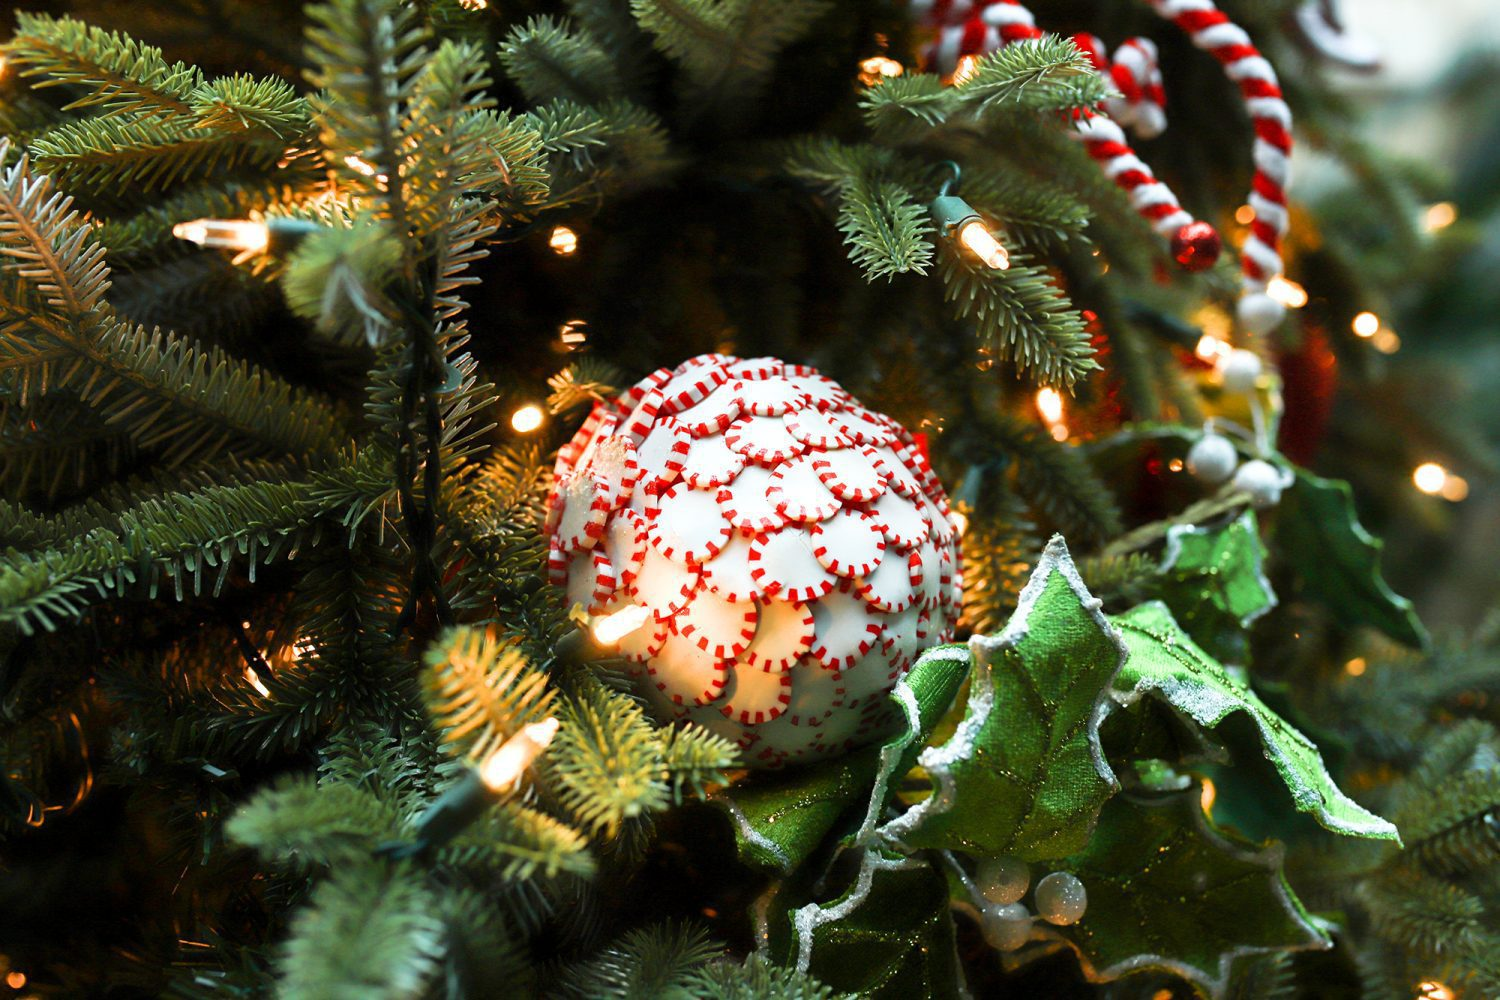 Peppermint Candy ornament on a Christmas Tree